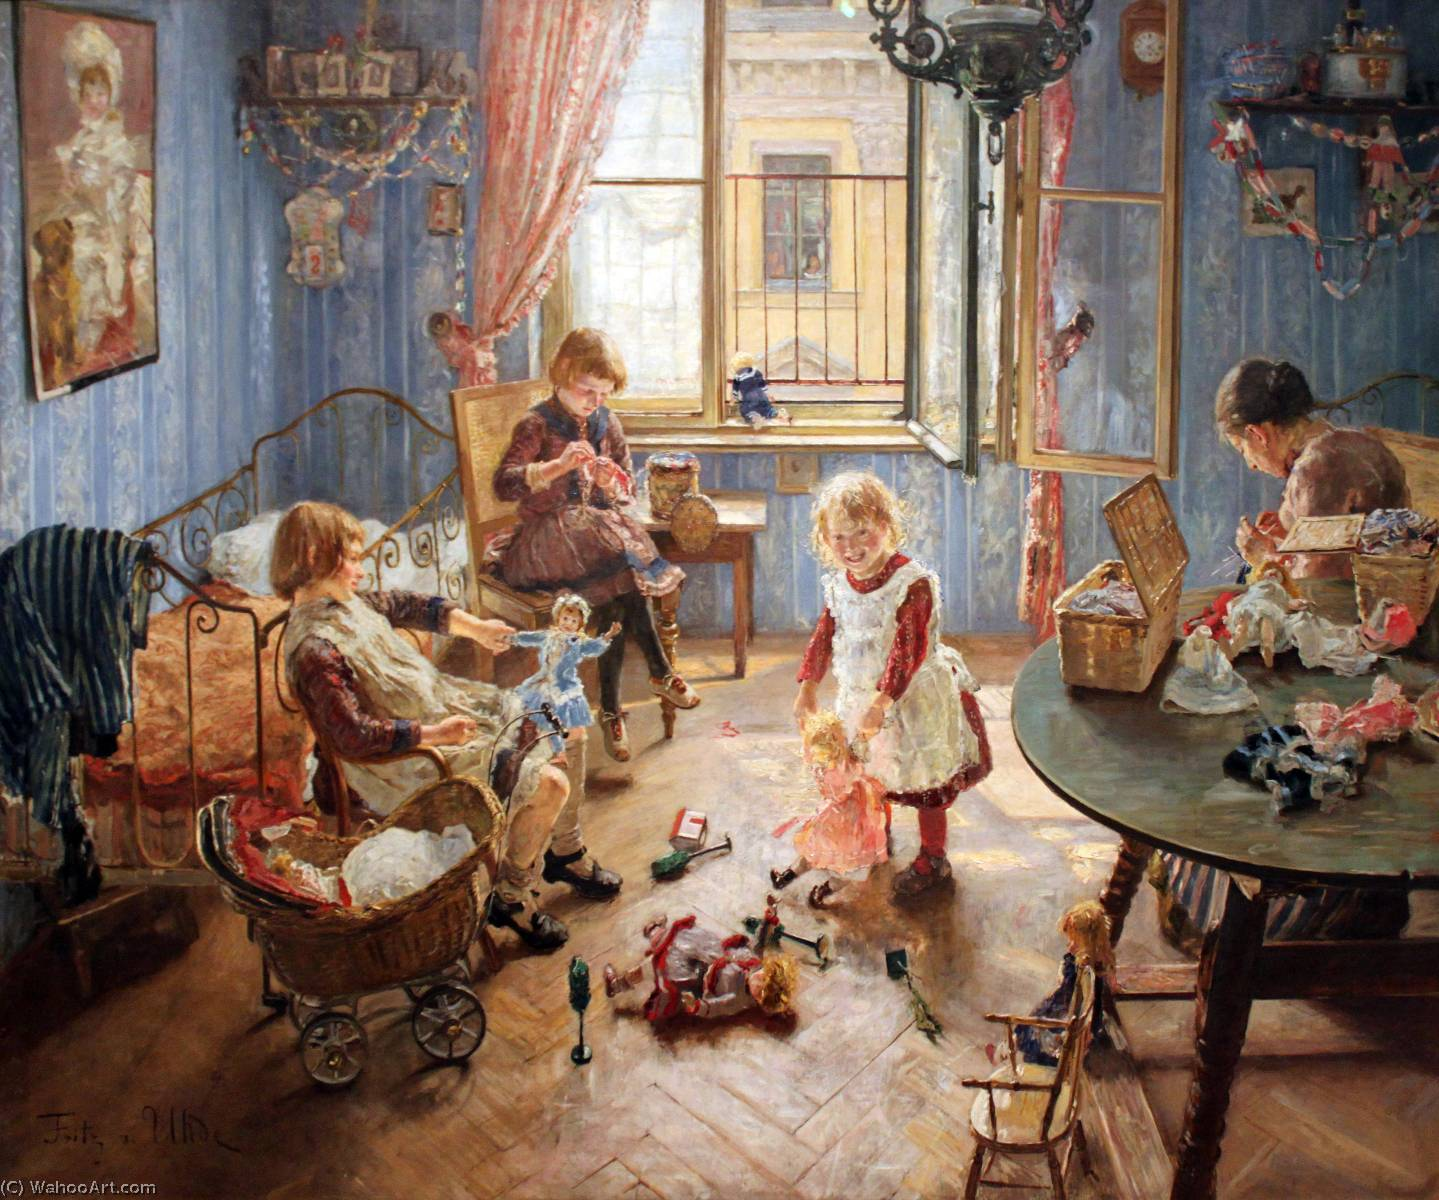 Anglais Children`s Garderie deutsch die kinderstube русский питомник, 1889 de Fritz Von Uhde (1848-1911) | Reproduction Peinture | WahooArt.com